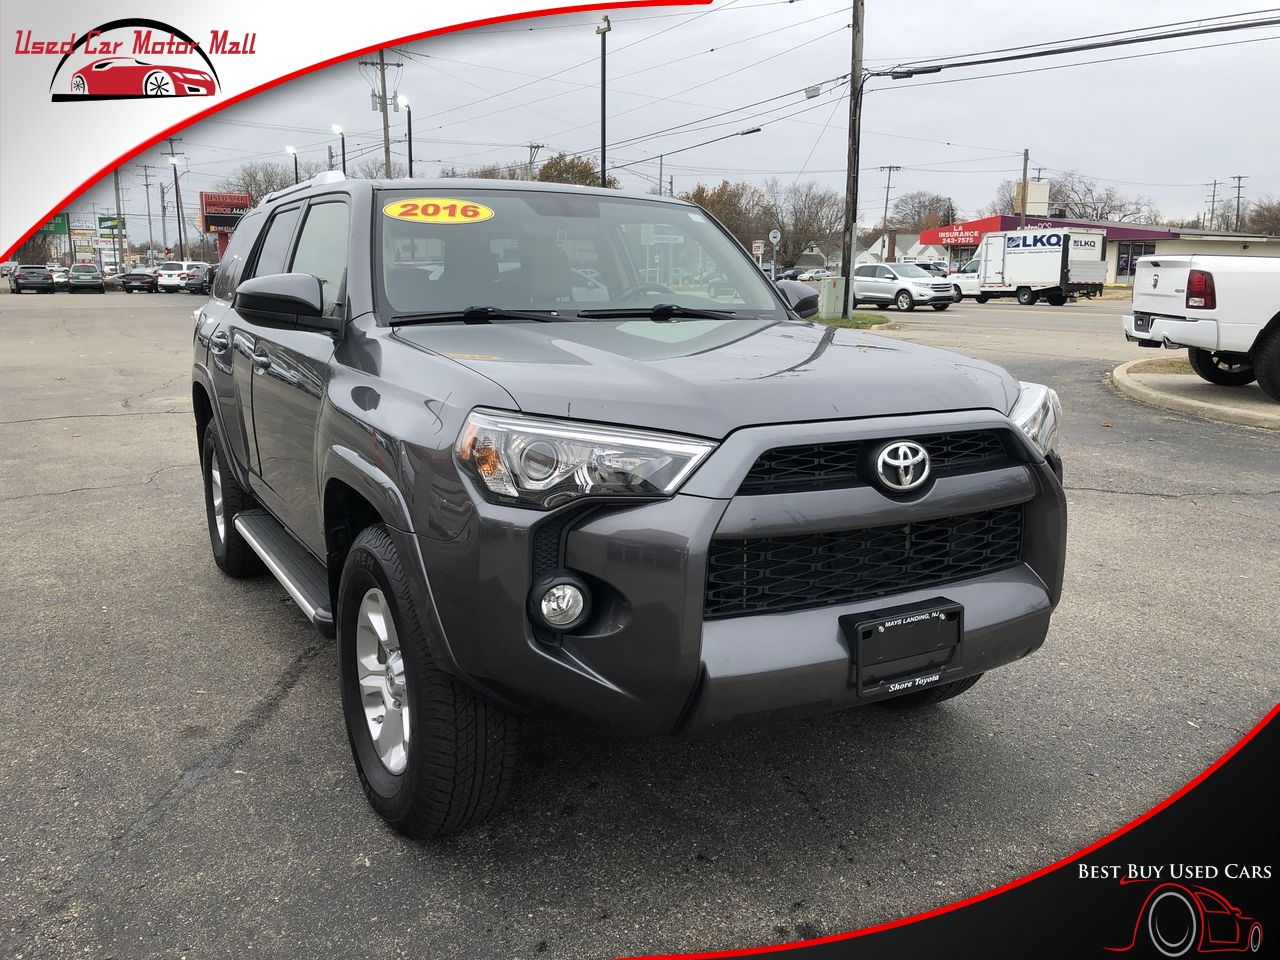 2007 Toyota 4Runner V6 4x4 Sport Edition, 083321-2, Photo 1